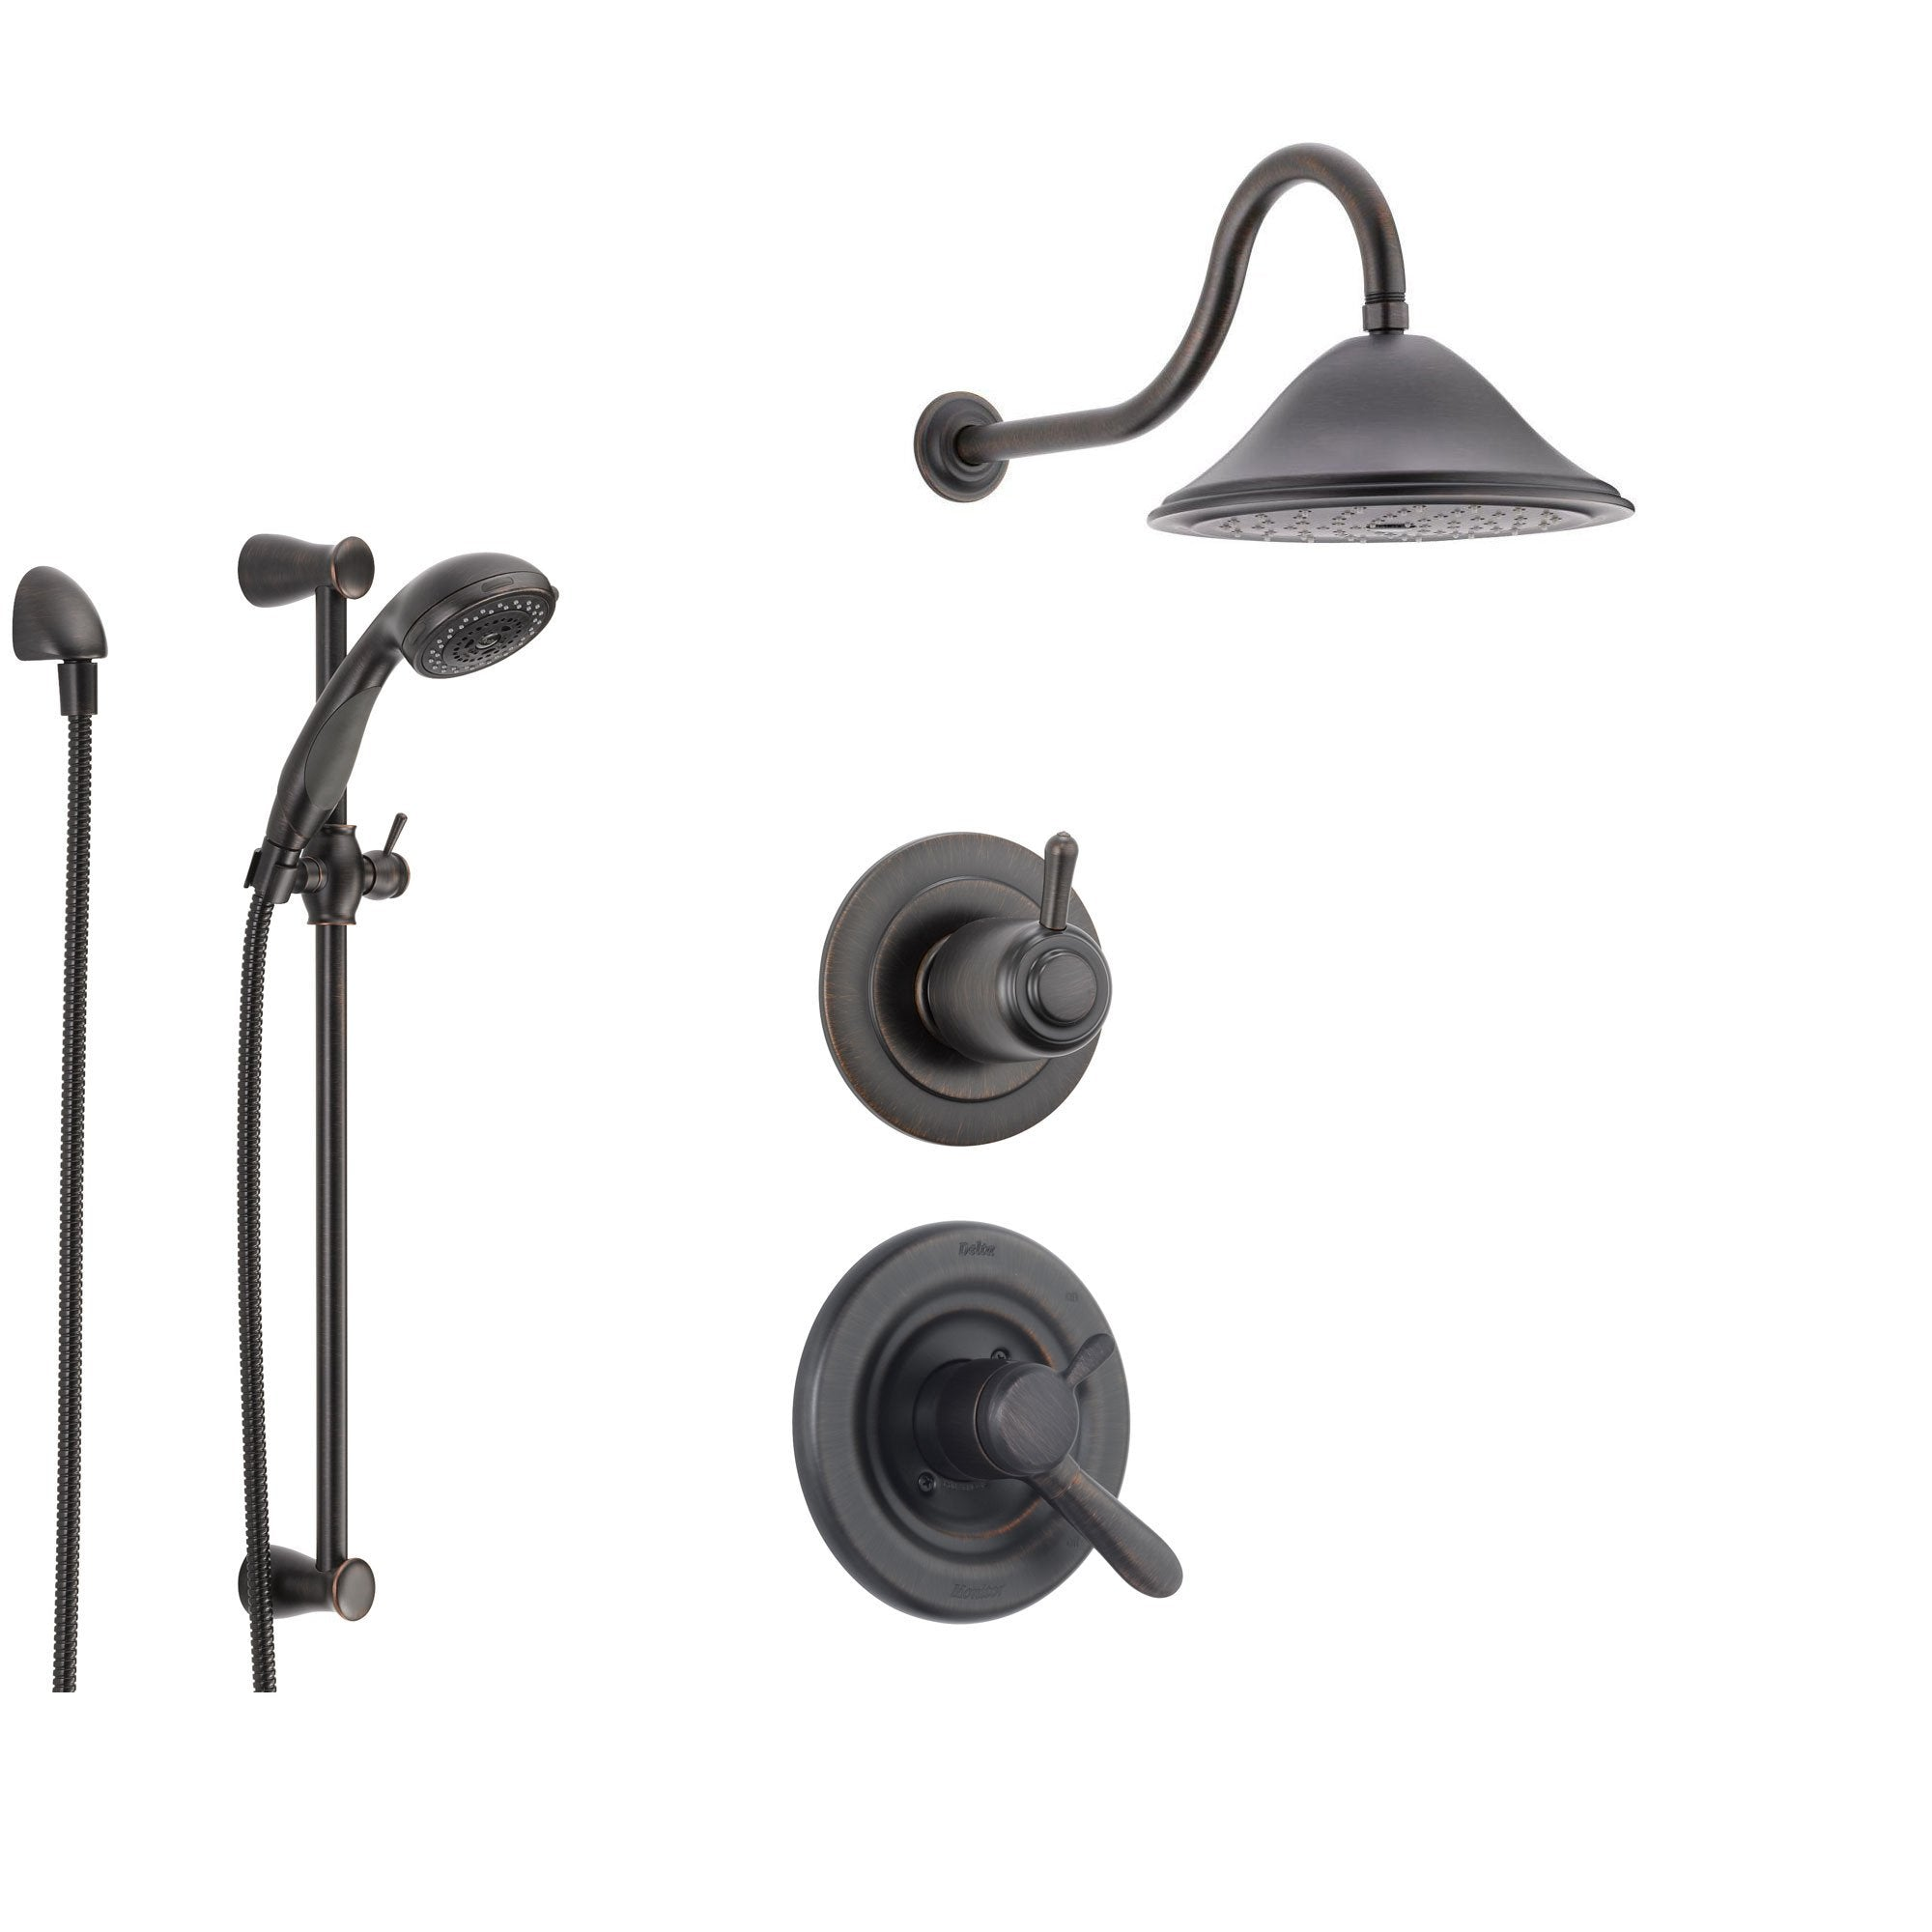 Delta Lahara Venetian Bronze Shower System with Dual Control Shower Handle, 3-setting Diverter, Large Rain Showerhead, and Handheld Shower SS173881RB